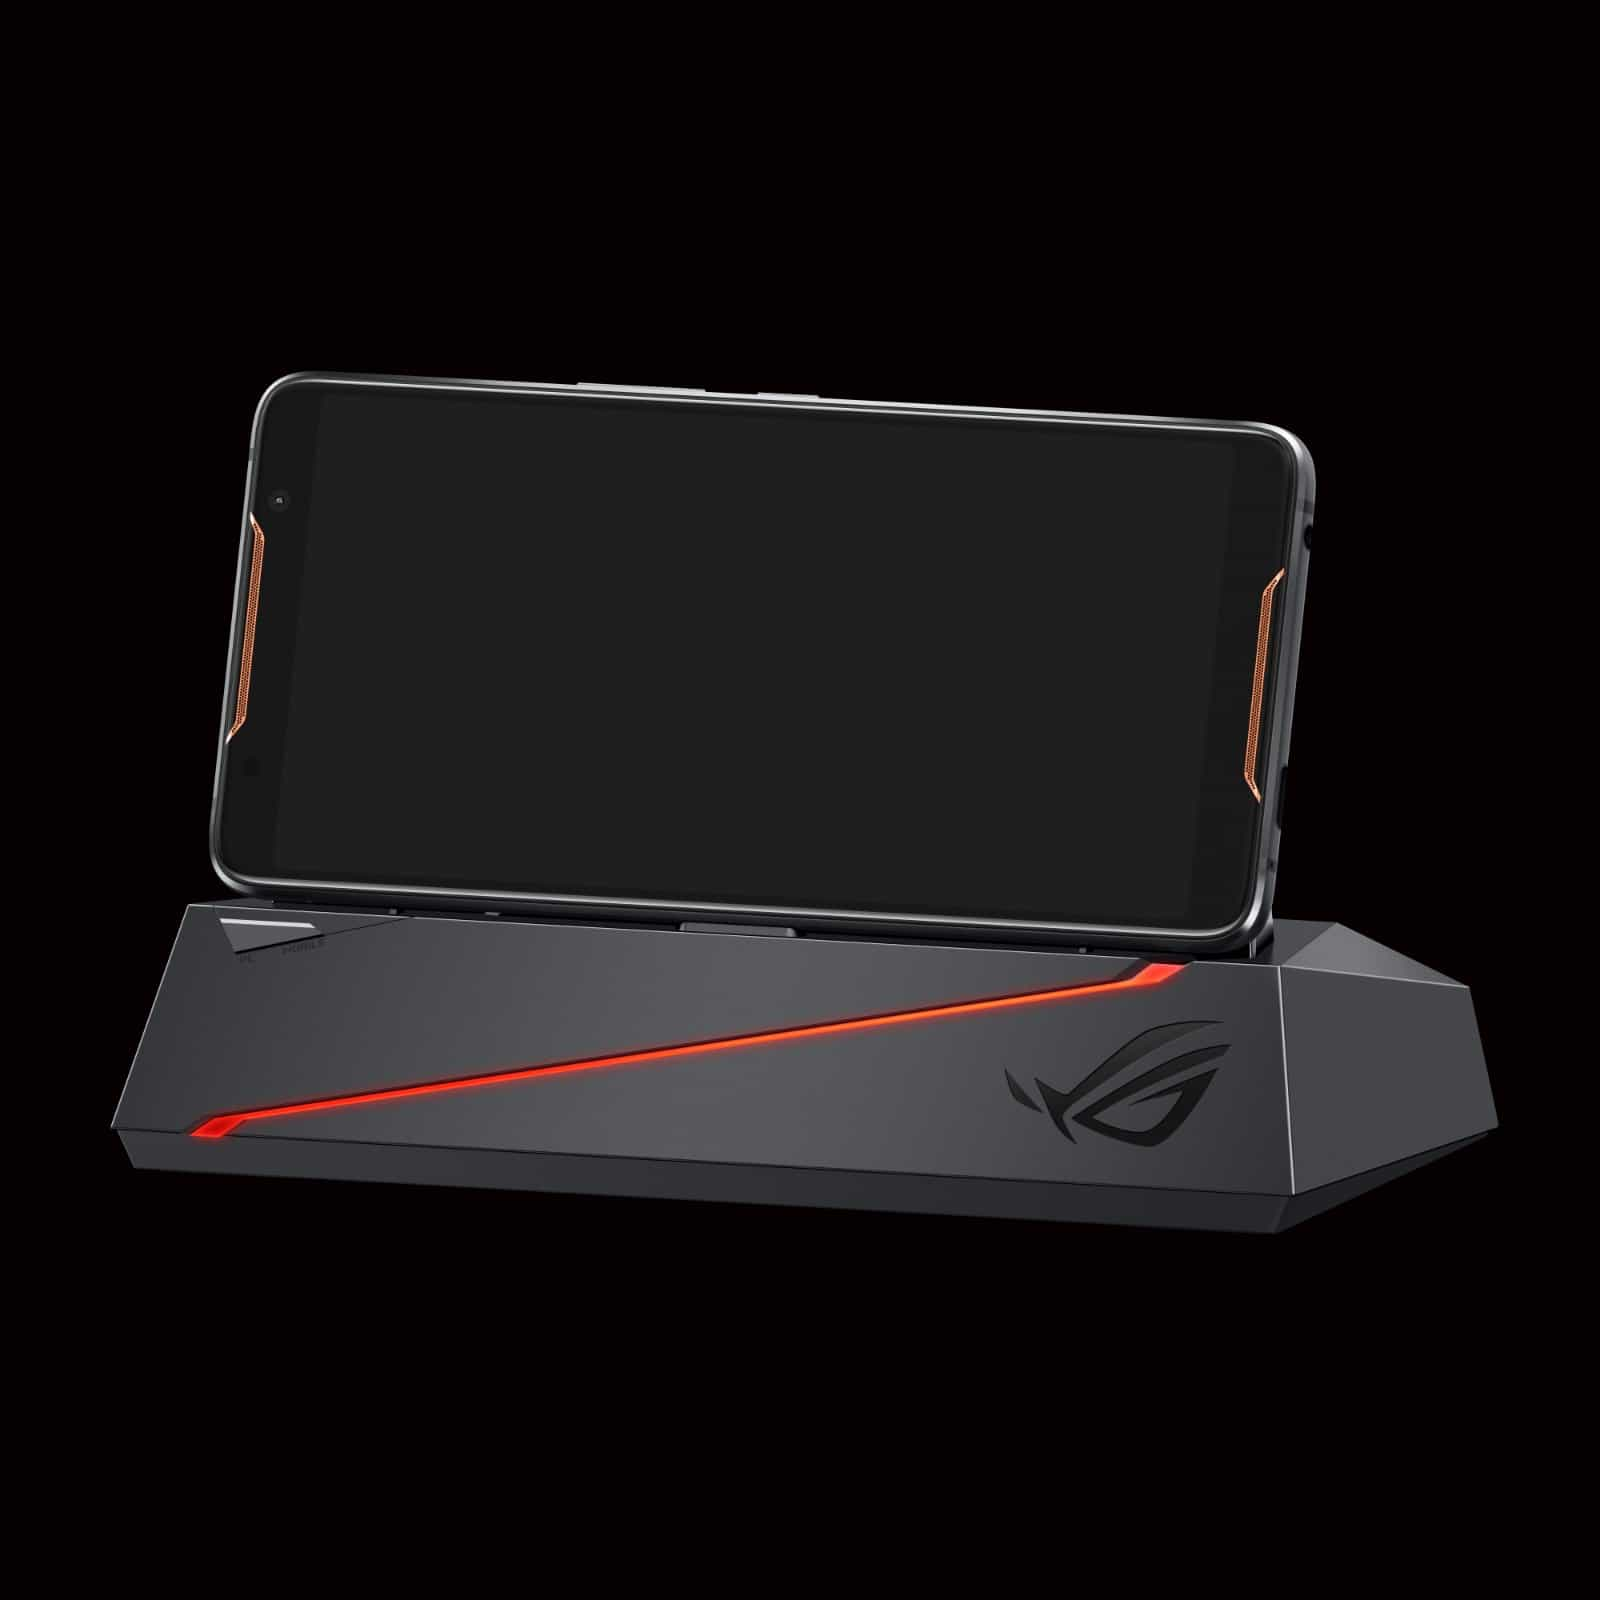 ASUS ROG Phone official image 10